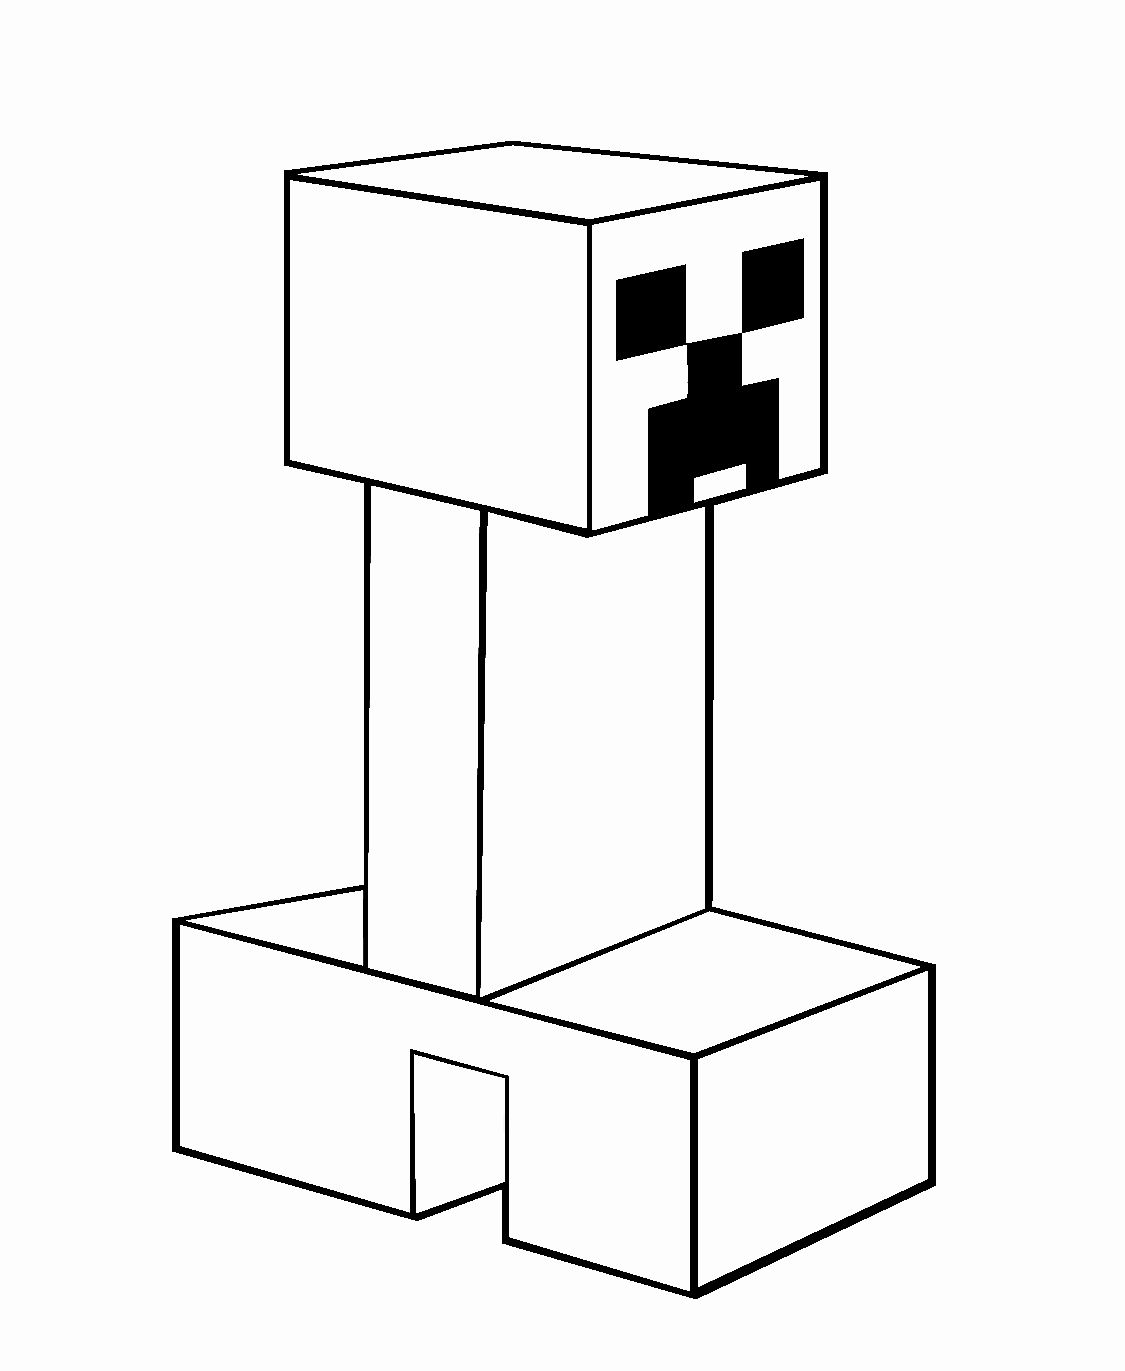 creeper coloring pages minecraft drawing creeper at getdrawings free download pages creeper coloring